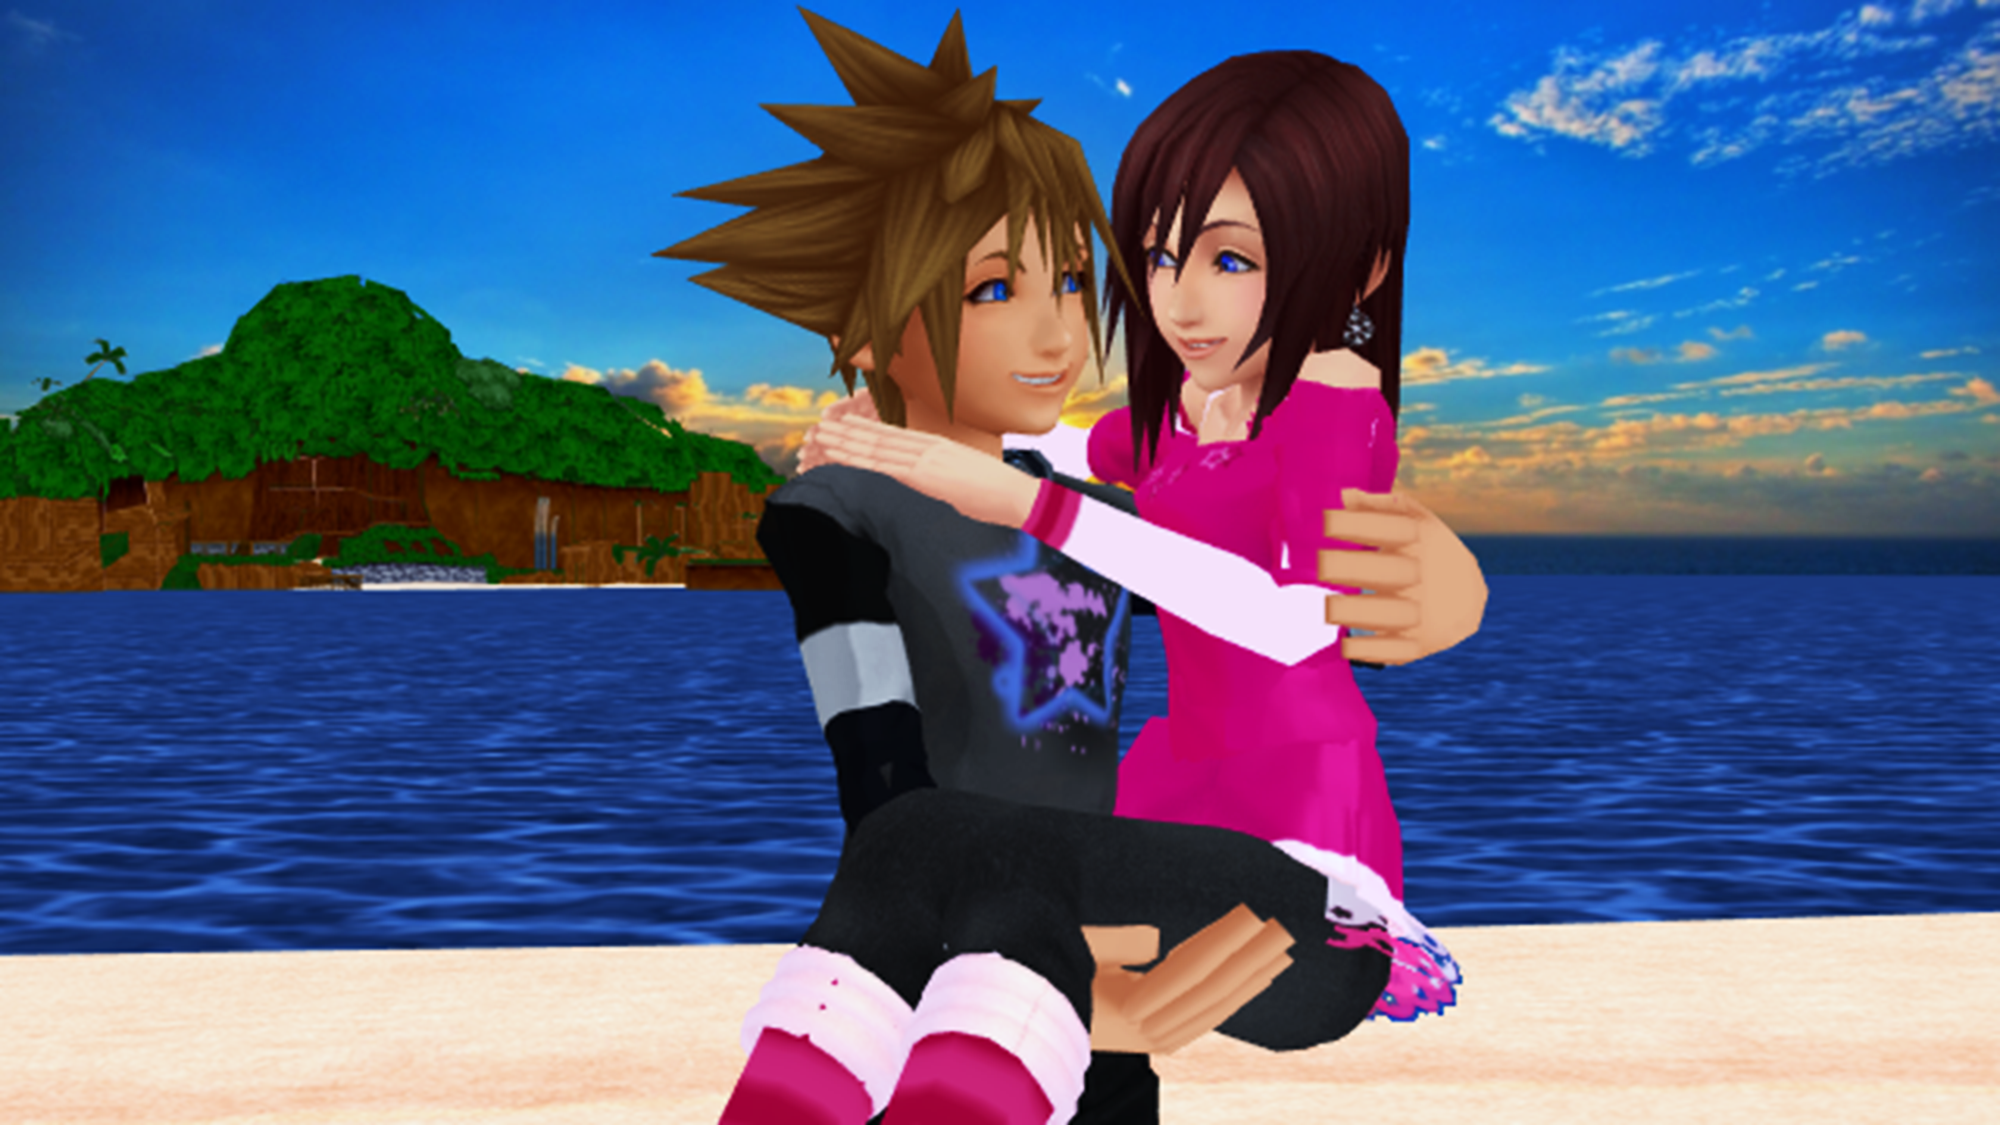 Sora Having Sex With Kairi 12